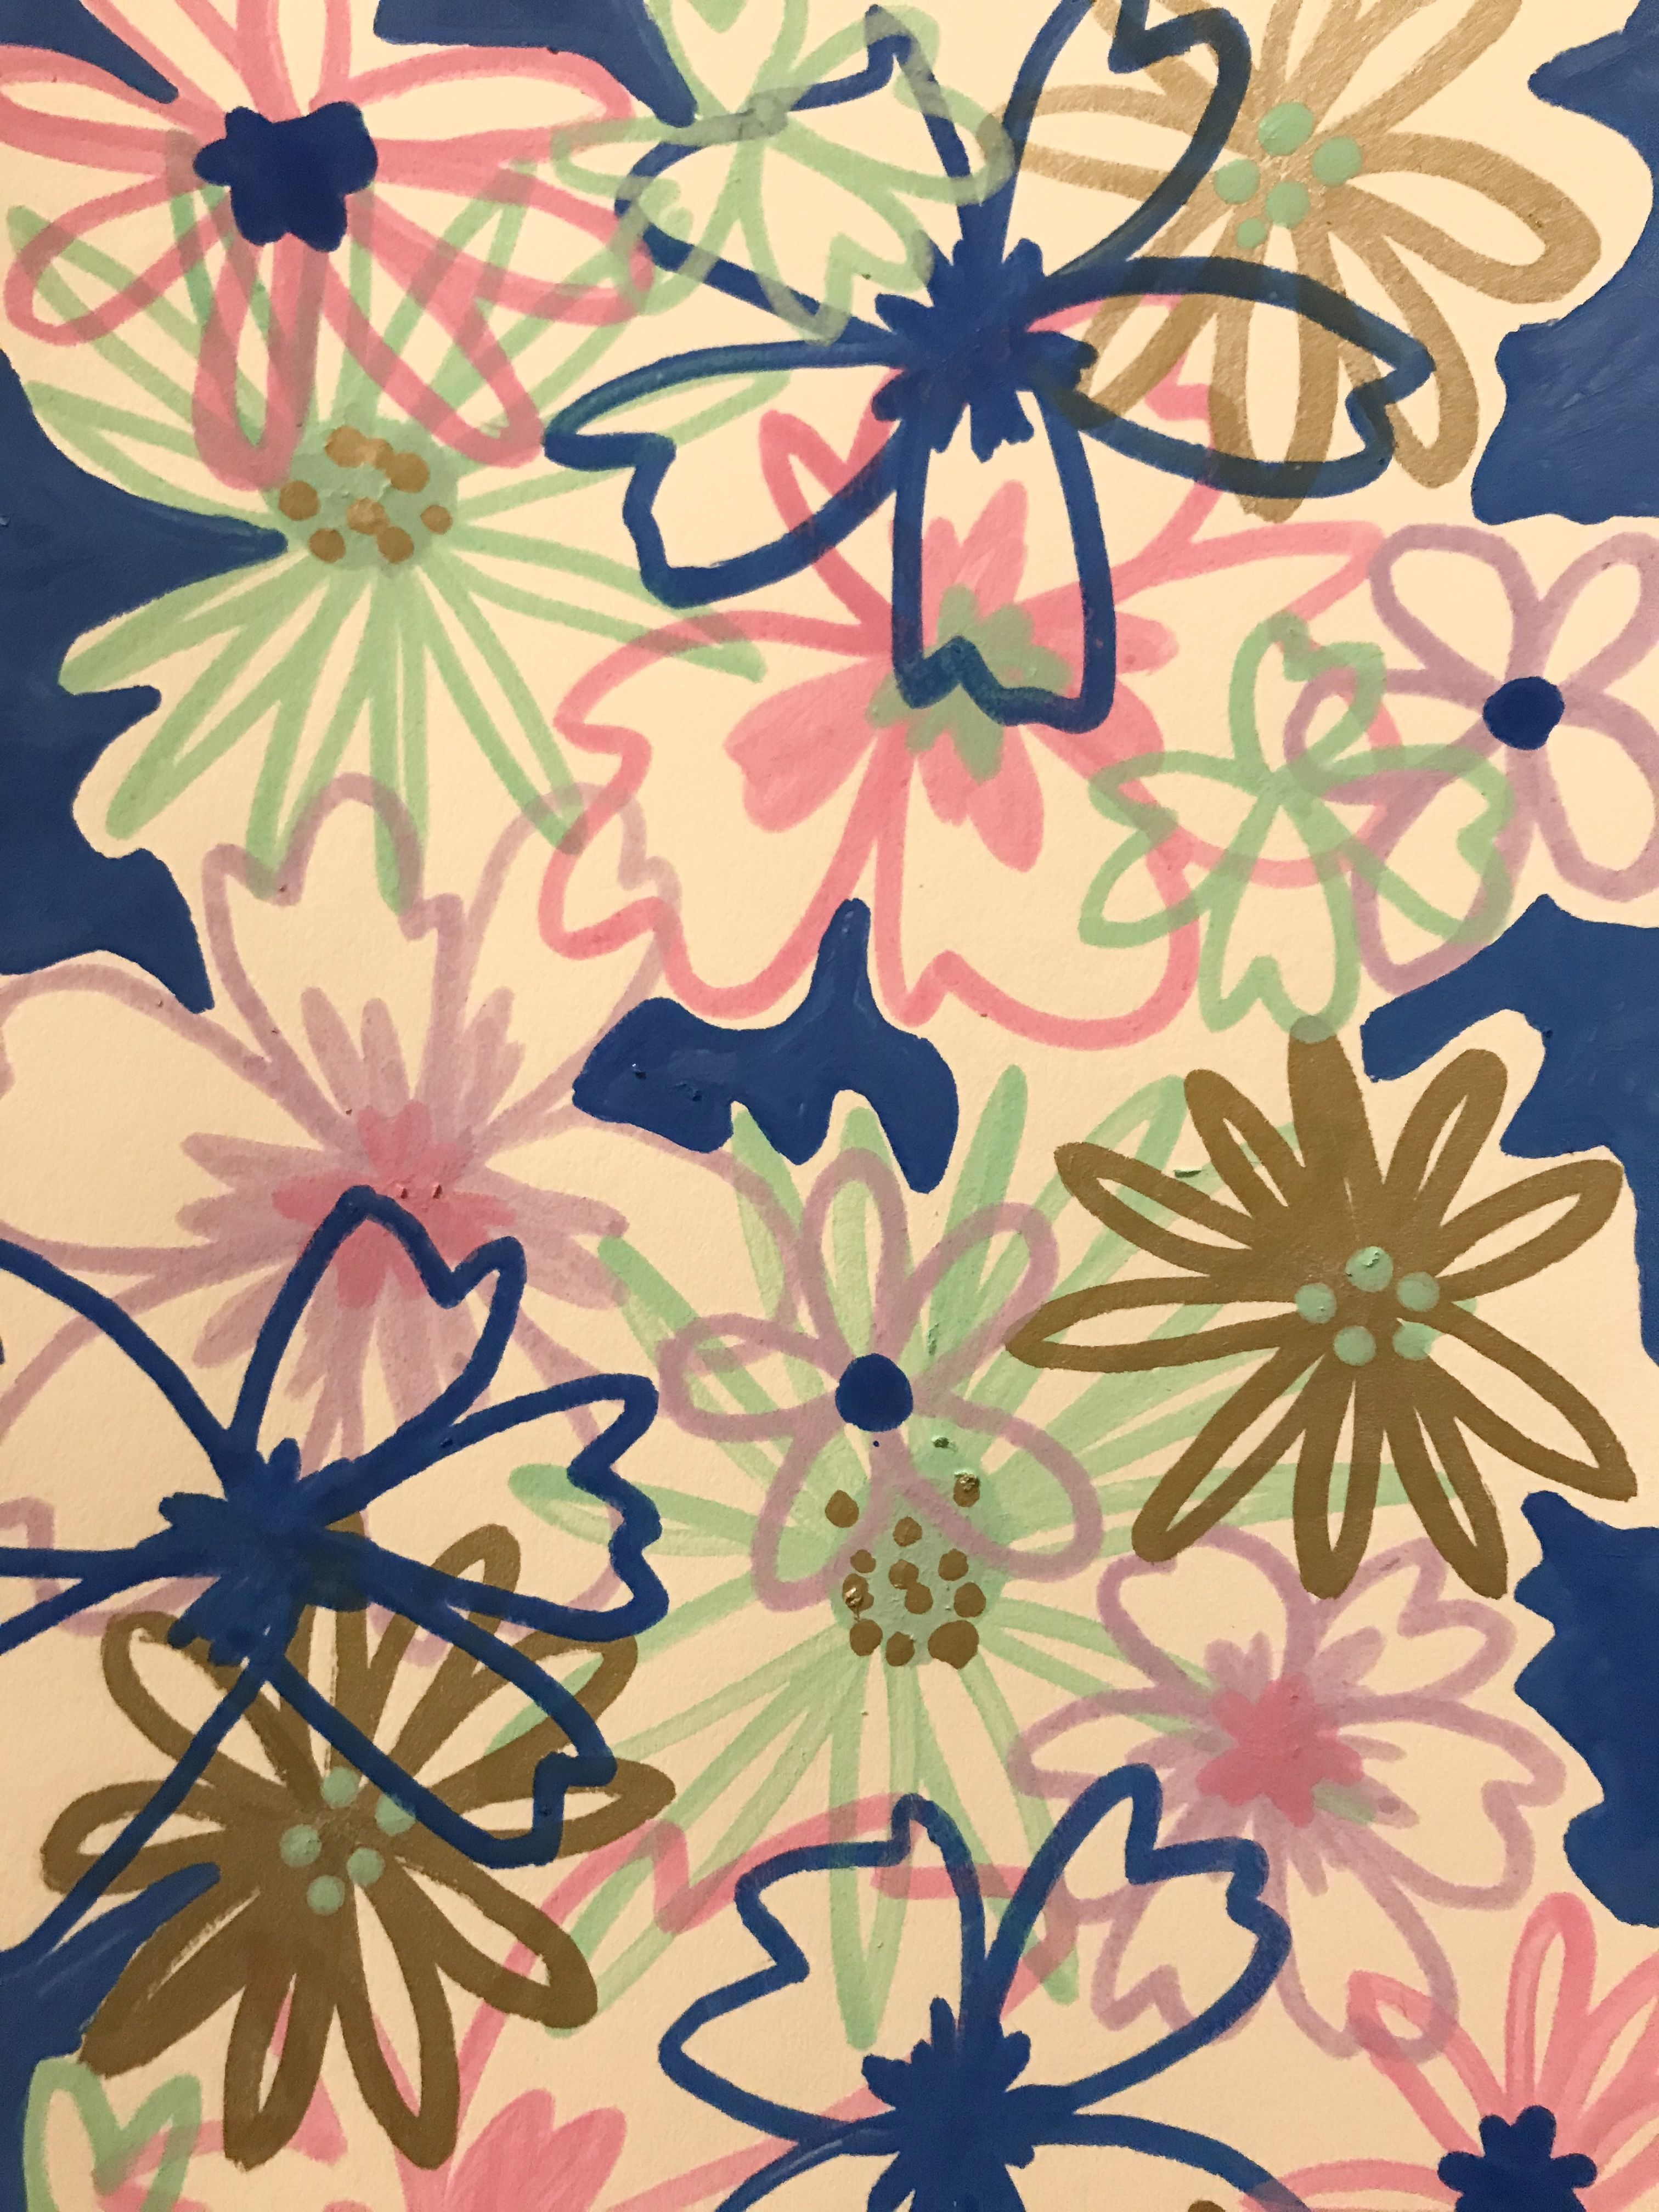 Collage of flowers made with paint markers on watercolor paper